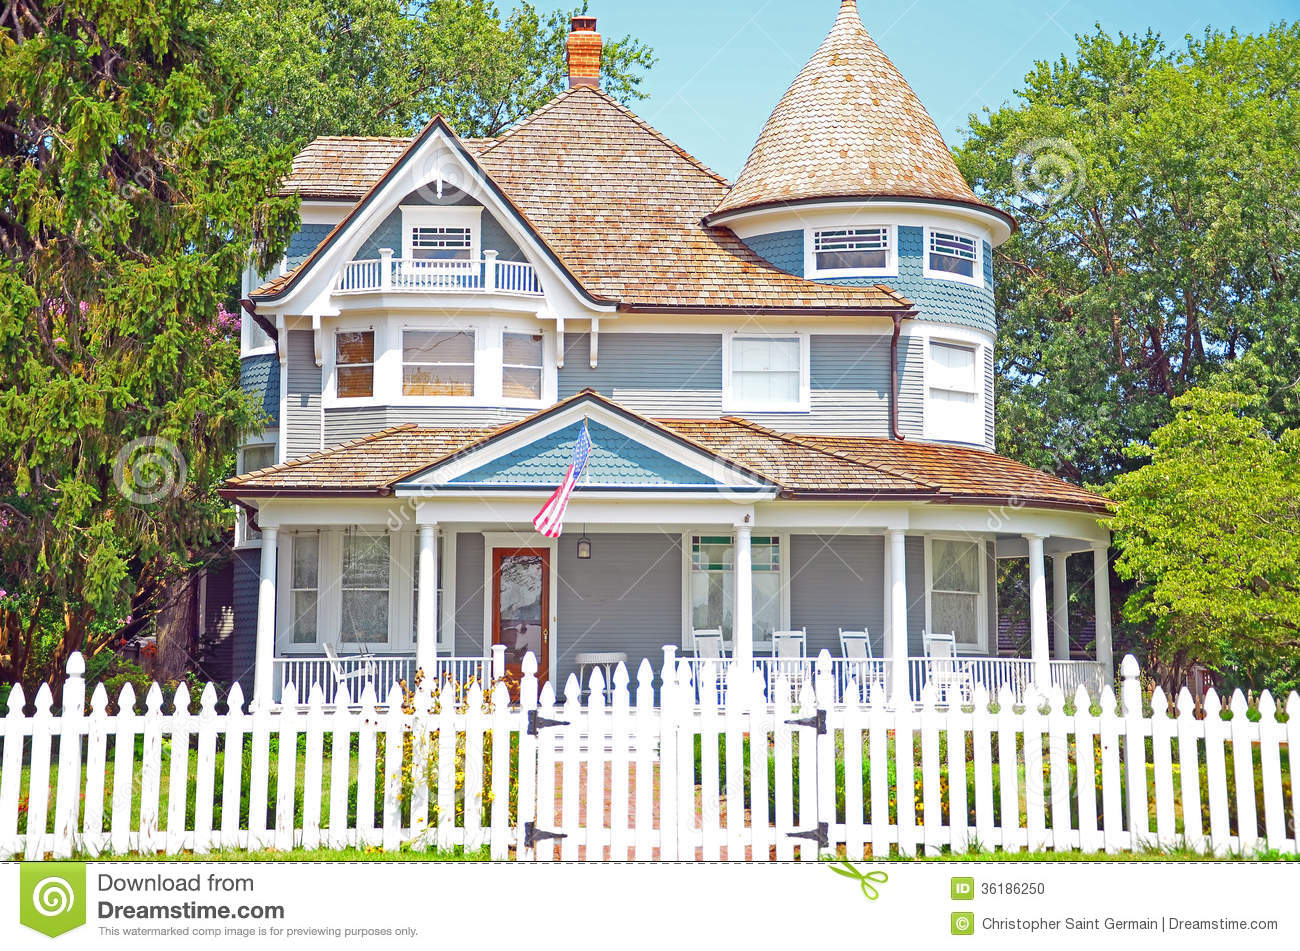 House With White Picket Fence American Dream Clipart 20